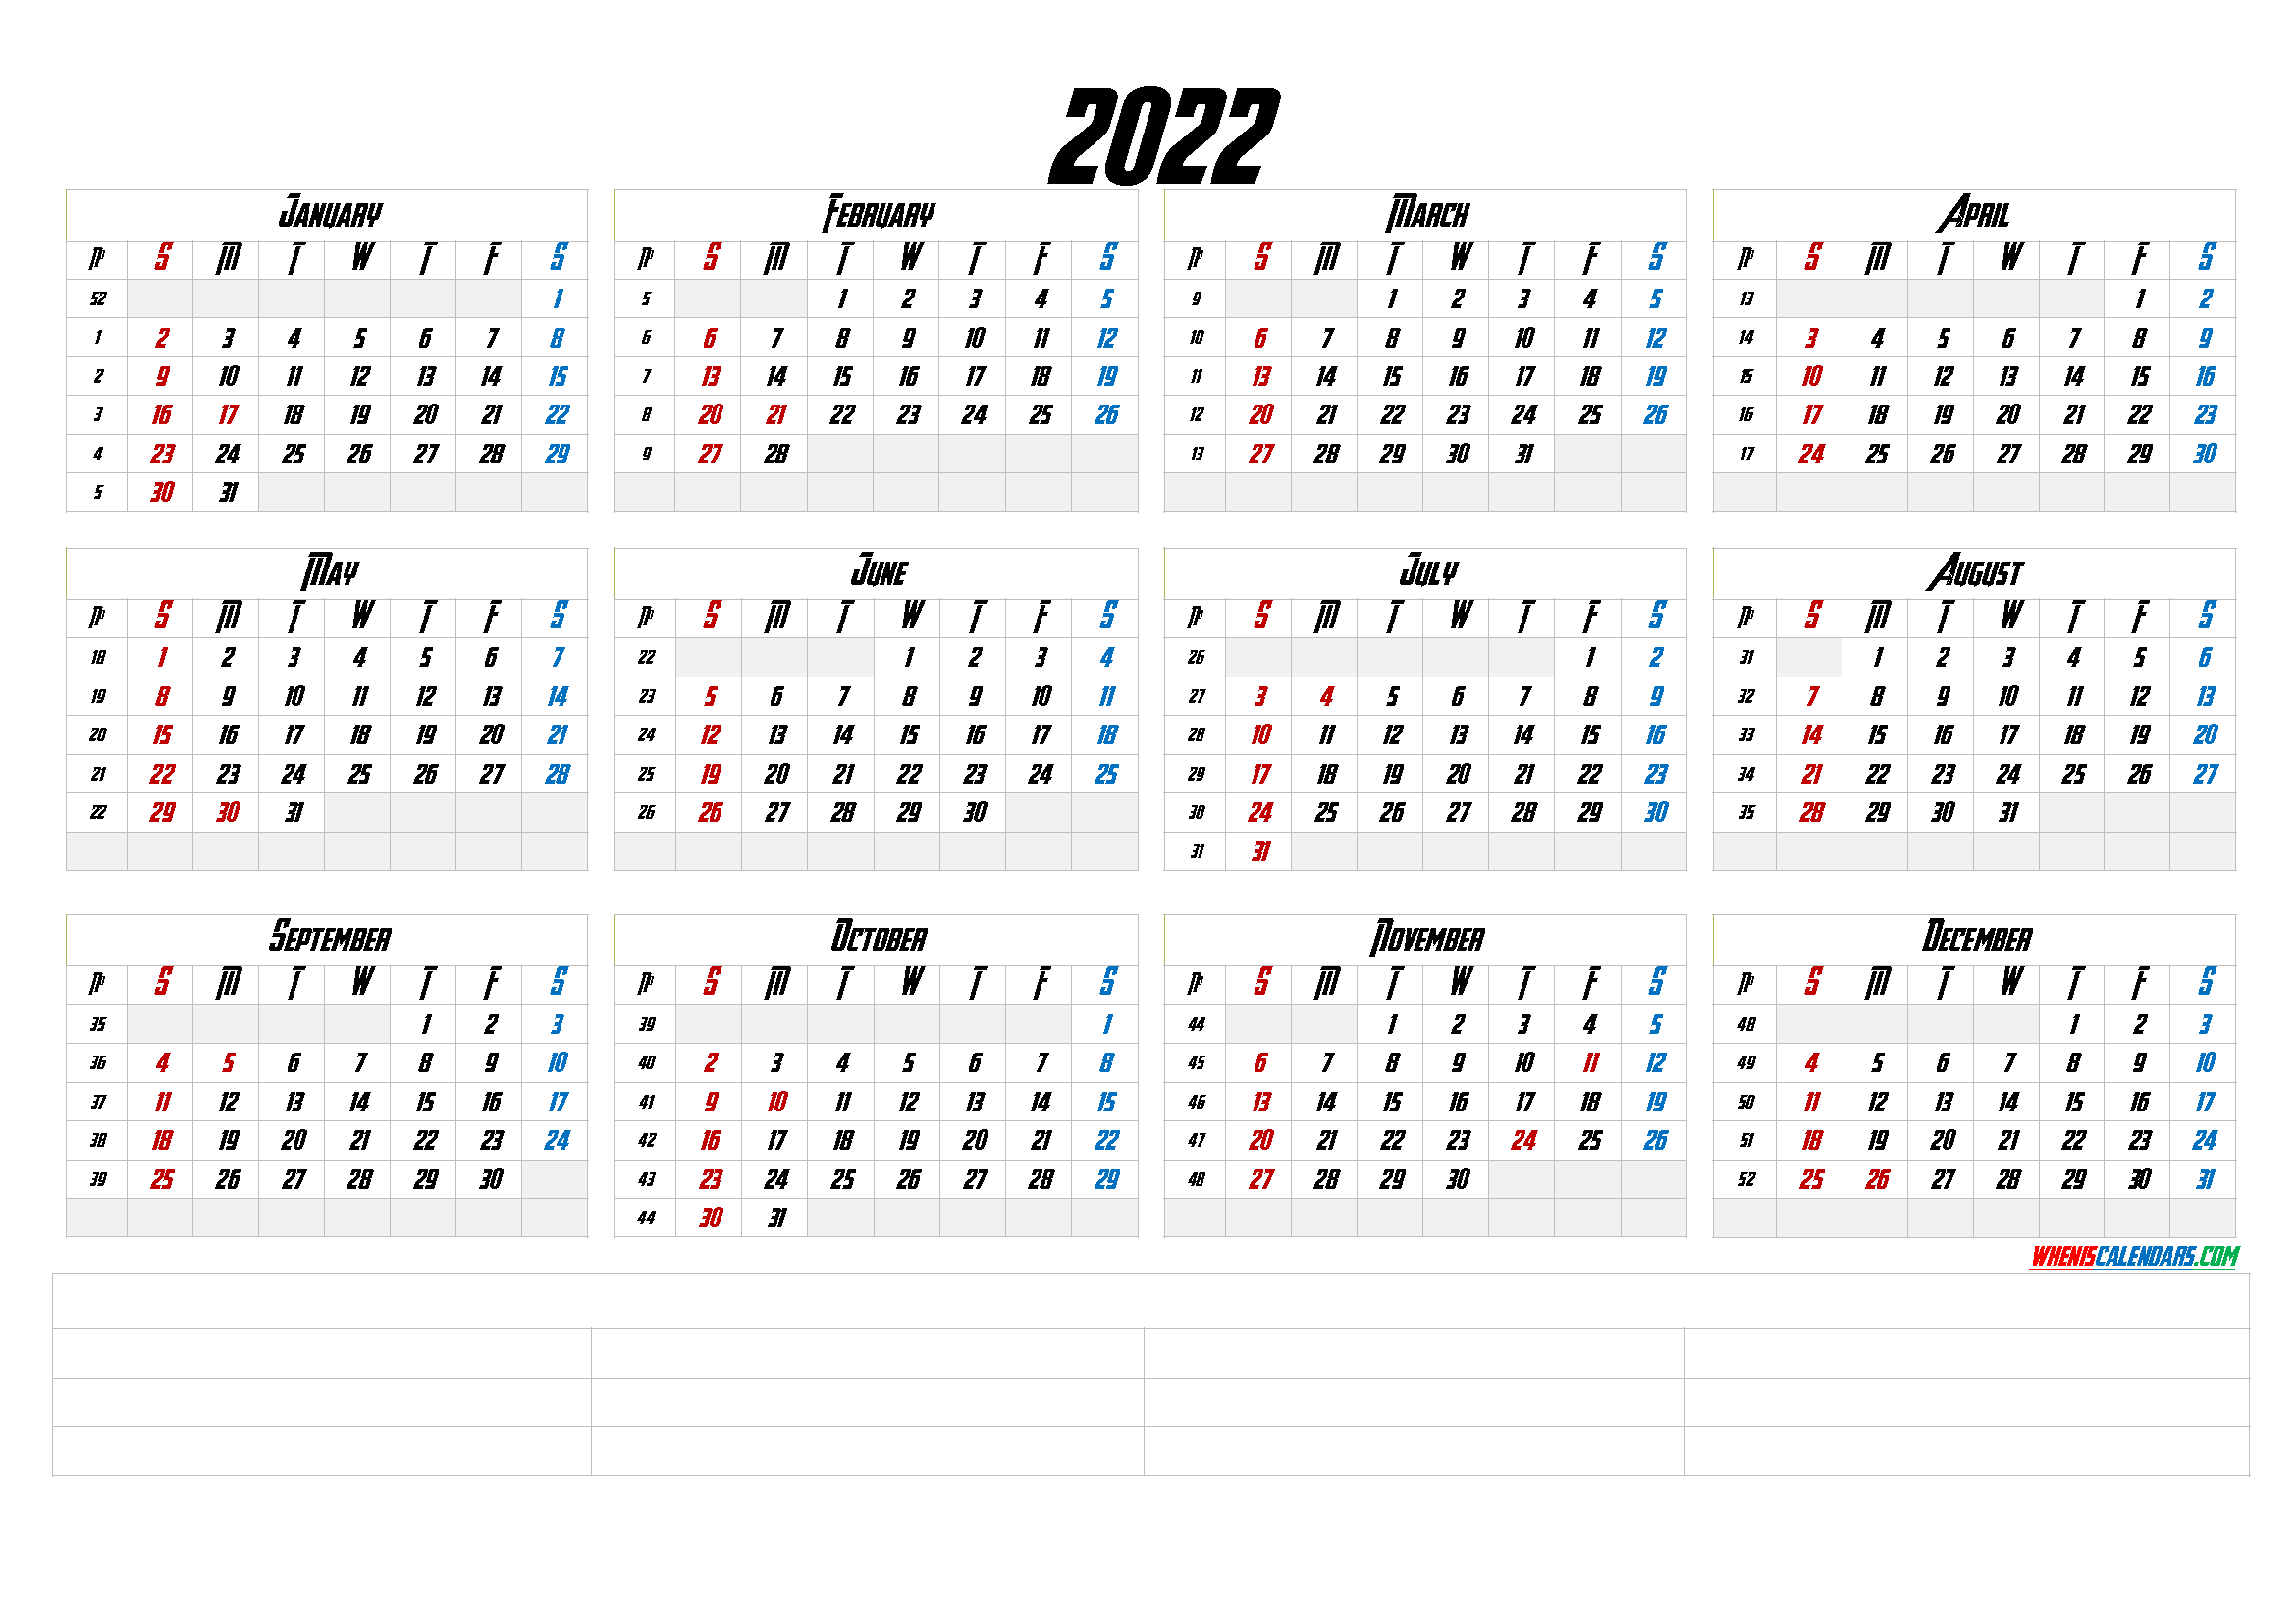 2022 Free Yearly Calendar Template Word (6 Templates)